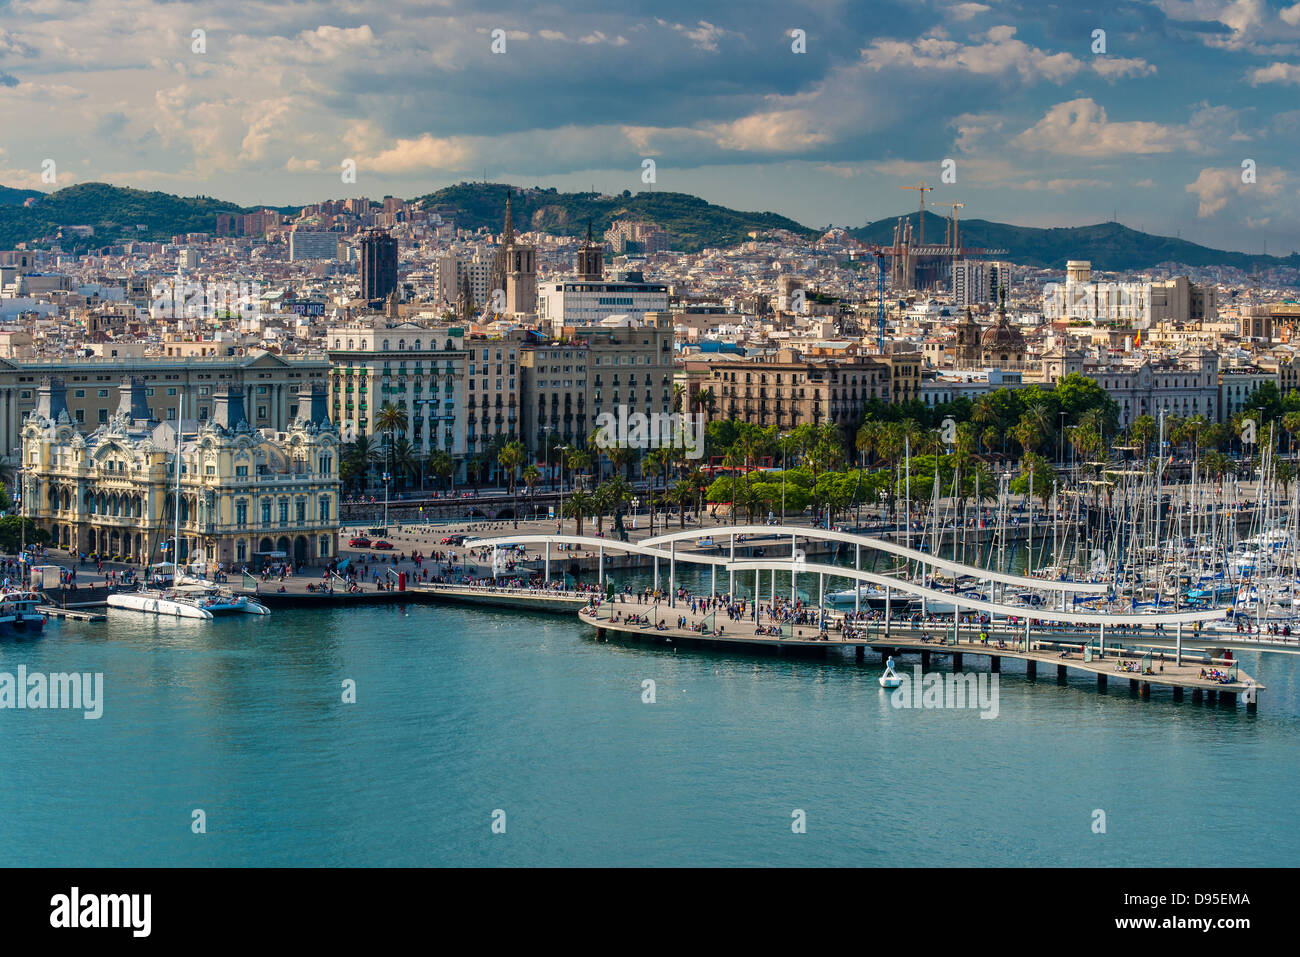 City skyline and Port Vell at sunset, Barcelona, Catalonia, Spain - Stock Image